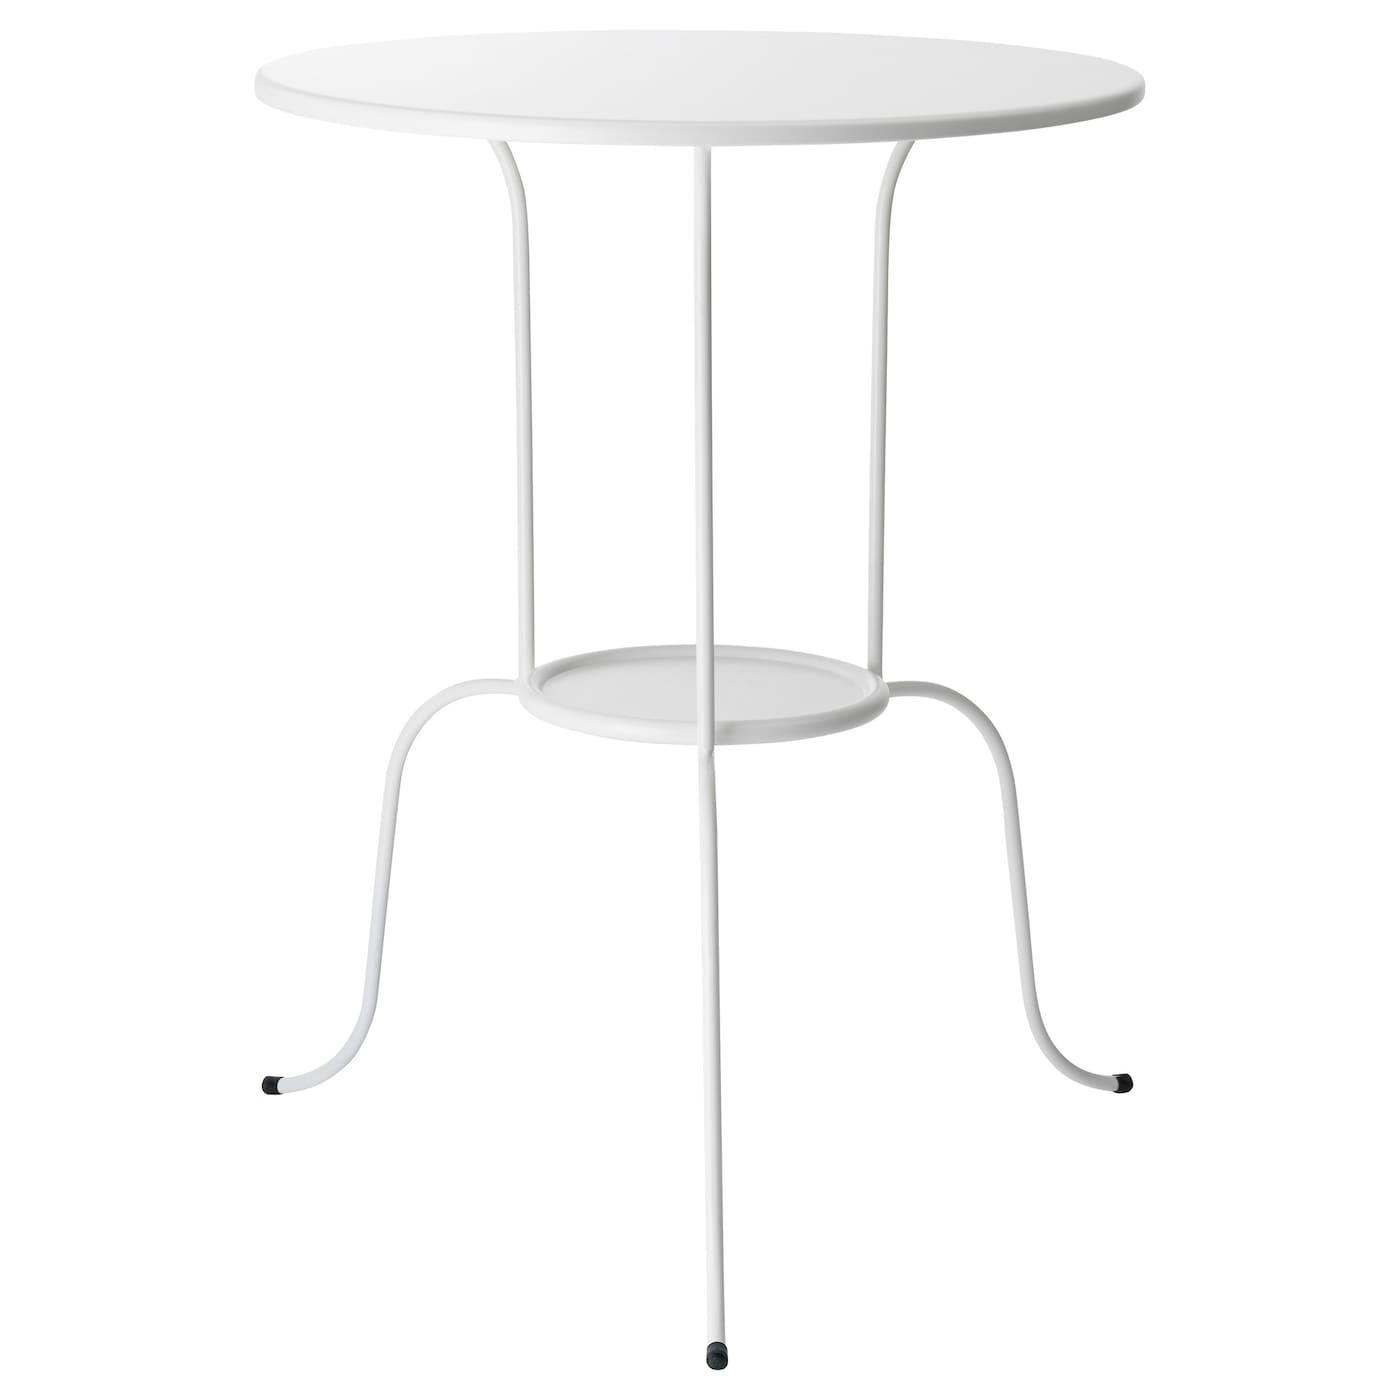 Lindved side table white 50x68 cm ikea for White end table